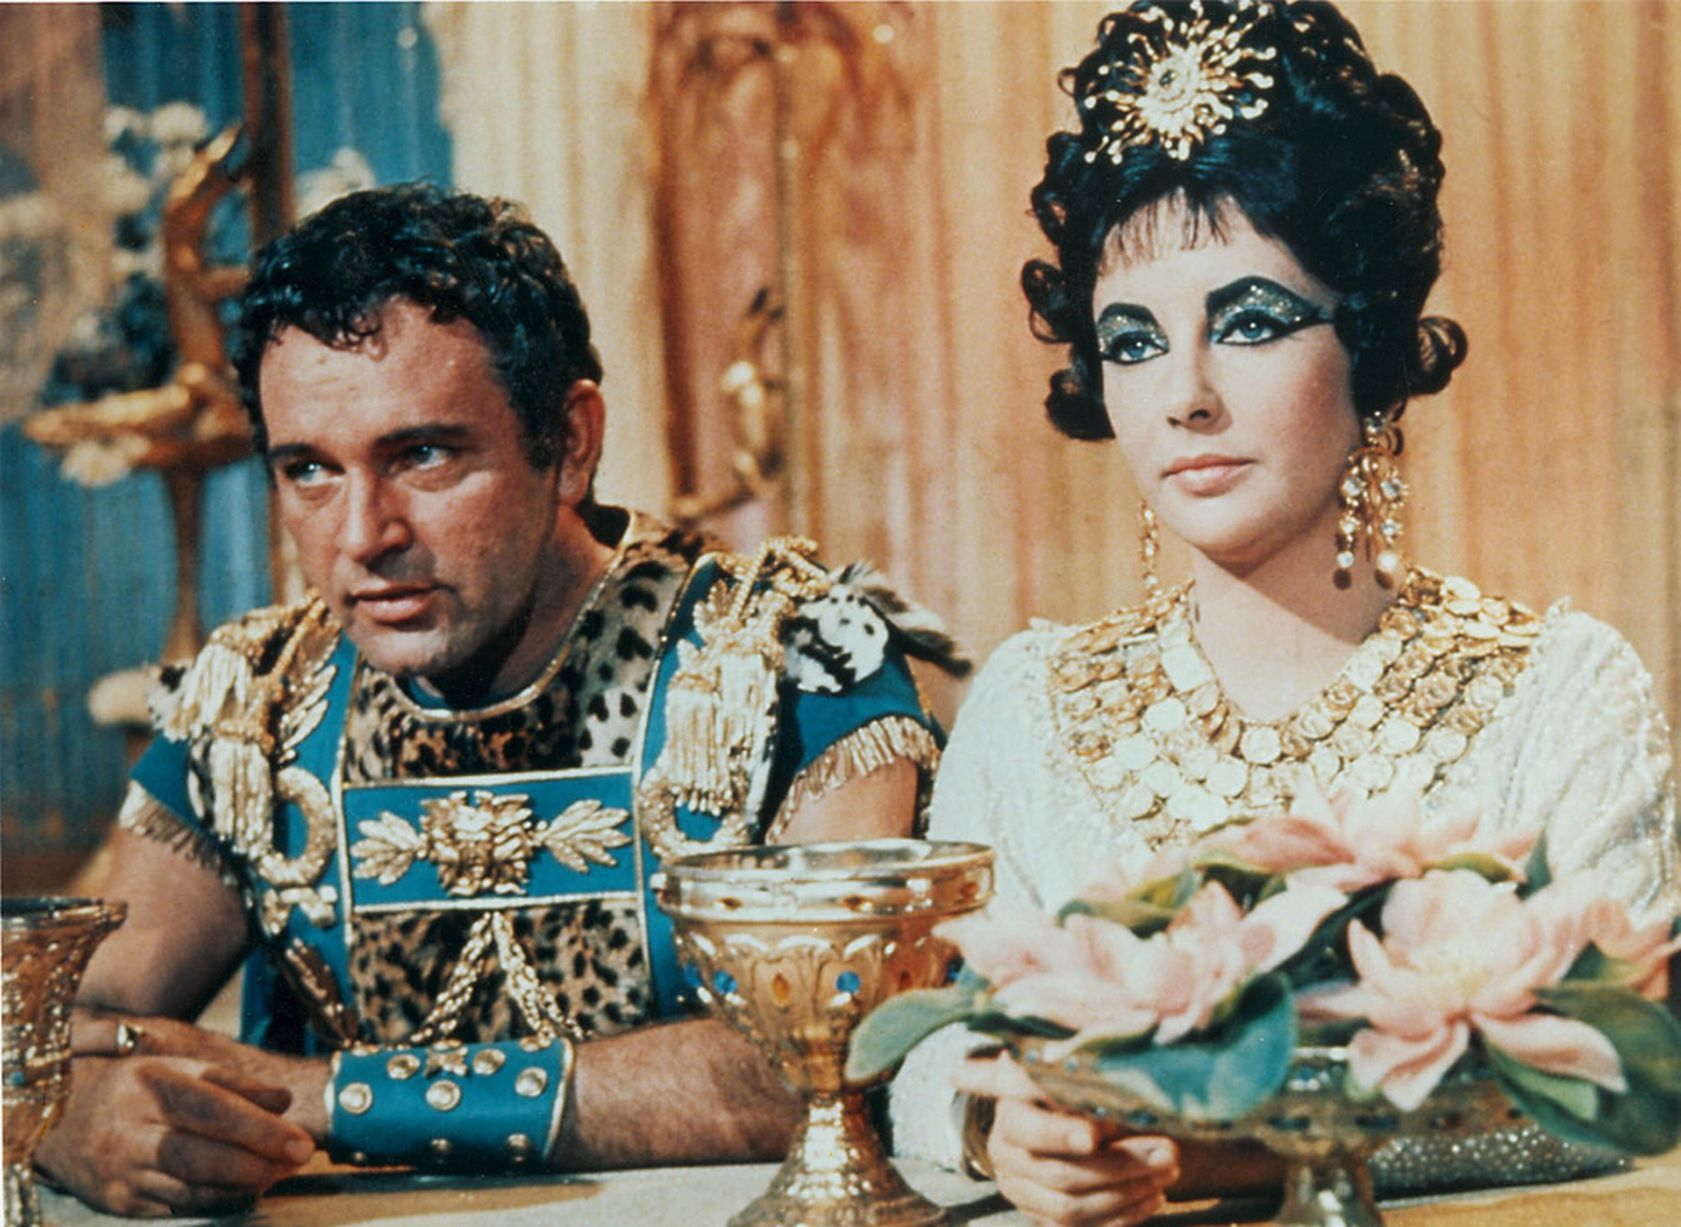 CLEOPATRA Elizabeth Taylor 1963 25 Hollywood Actors Who Had An Affair With Their Co-Star